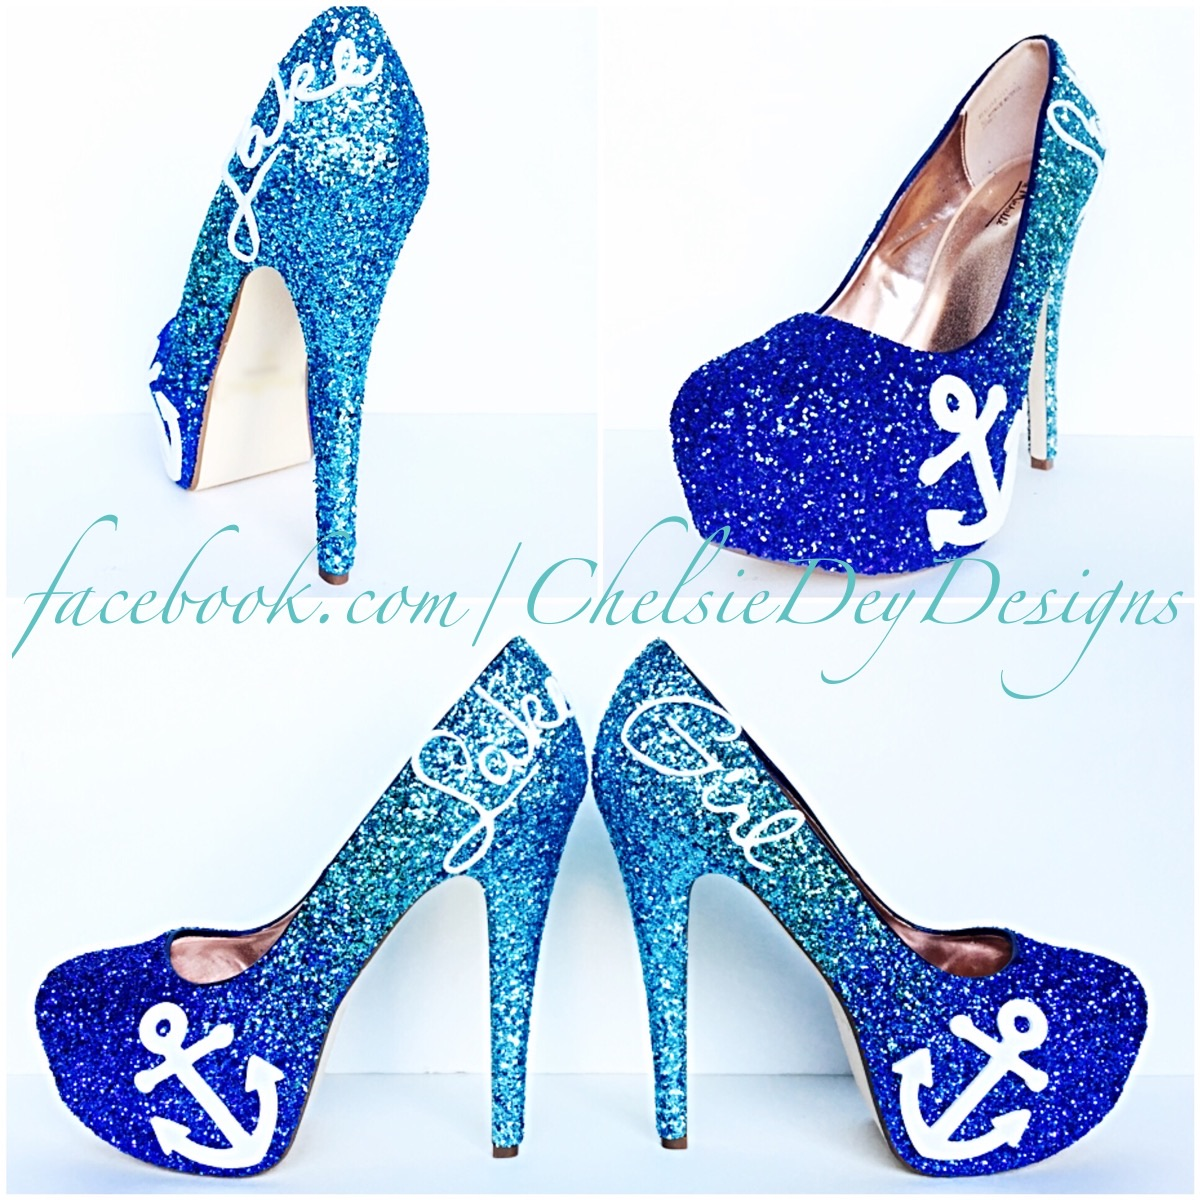 bf8db674a4d3 Glitter High Heels - Blue and Silver Pumps - Lake Girl Aqua Turquoise Ombre  Platform Shoes - Fade Two Tone Heels - Sparkly Glitzy Wedding Heels on  Storenvy